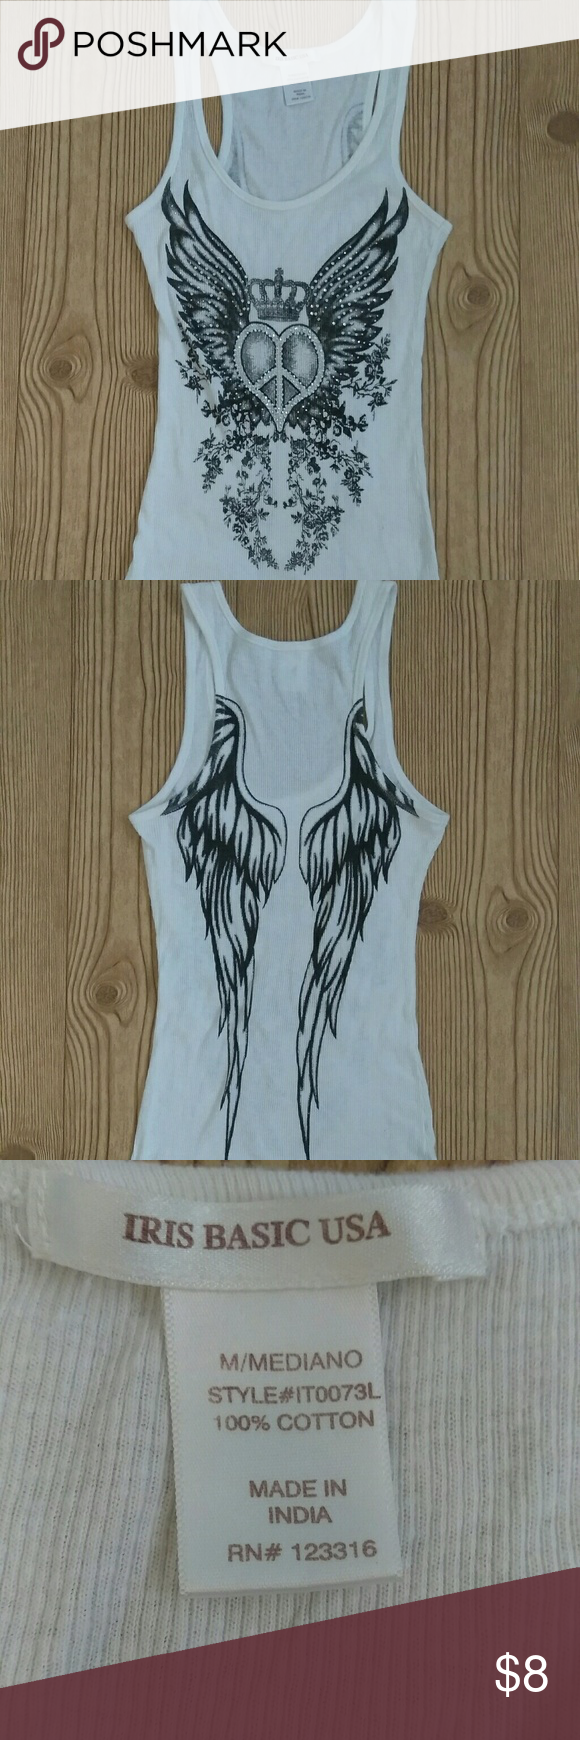 01256398966f9 💥tank top wife beater angel wings size medium white tank top heart png  580x1740 White